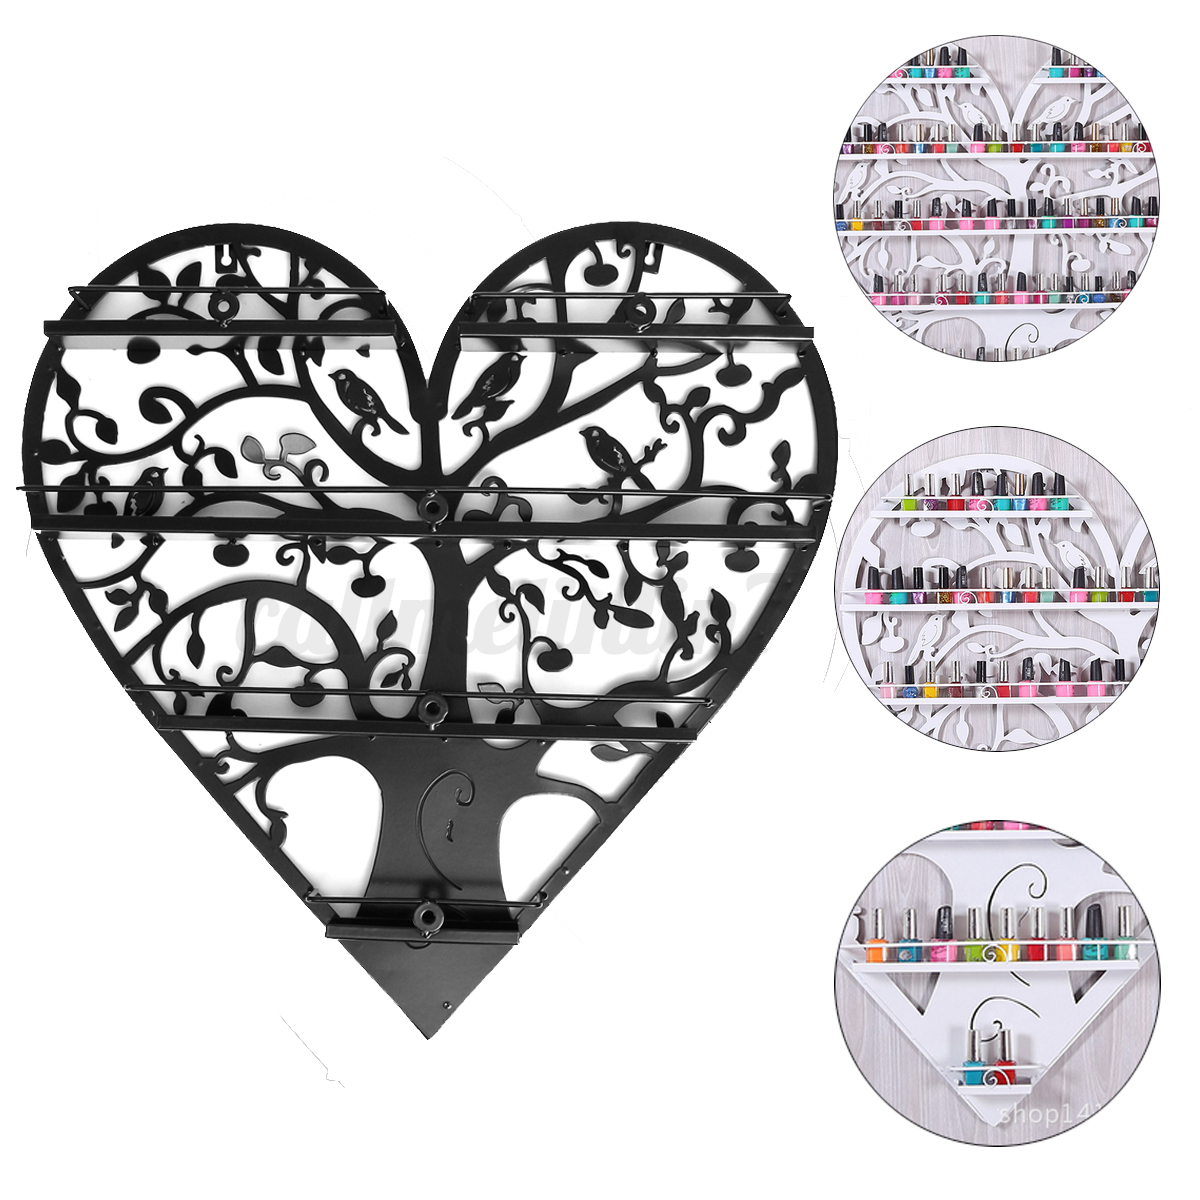 4 Tier Heart Metal Wall Mounted Nail Polish Rack Organizer Display Holder Shelf